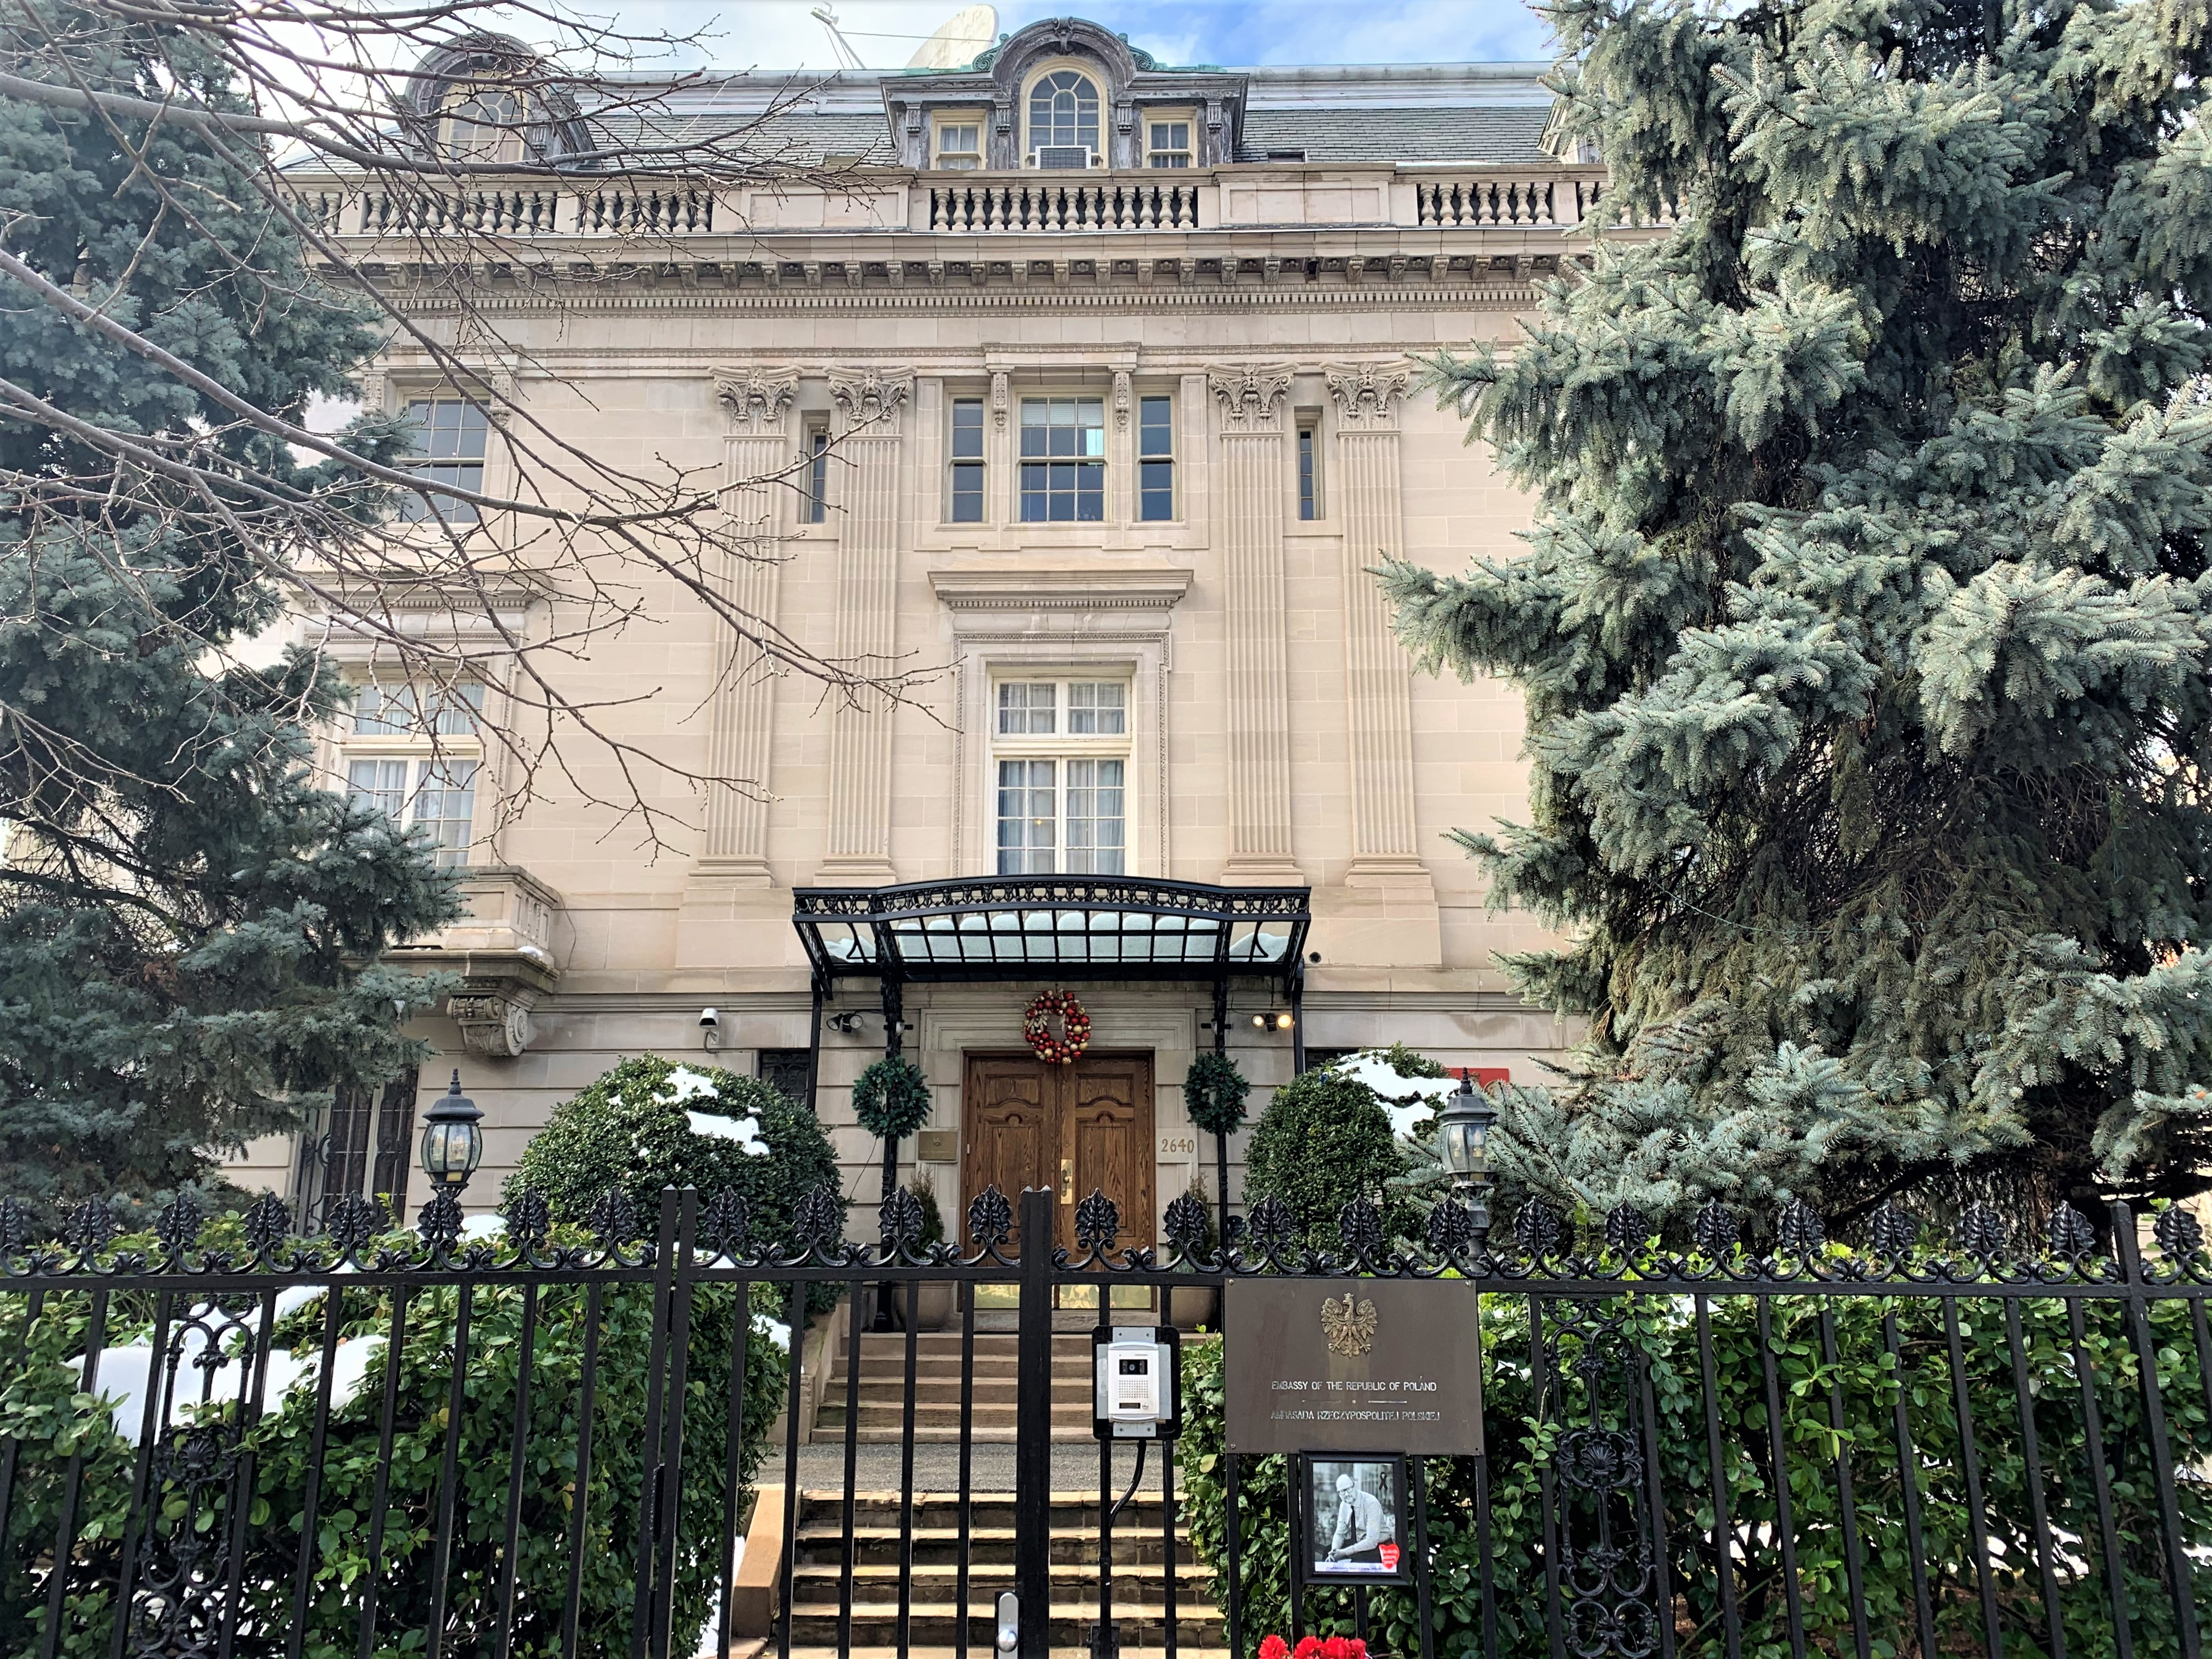 Real Estate & Homes For Sale Near The Embassy of Poland in Washington, DC. Artyom Shmatko Luxury Real Estate Agent